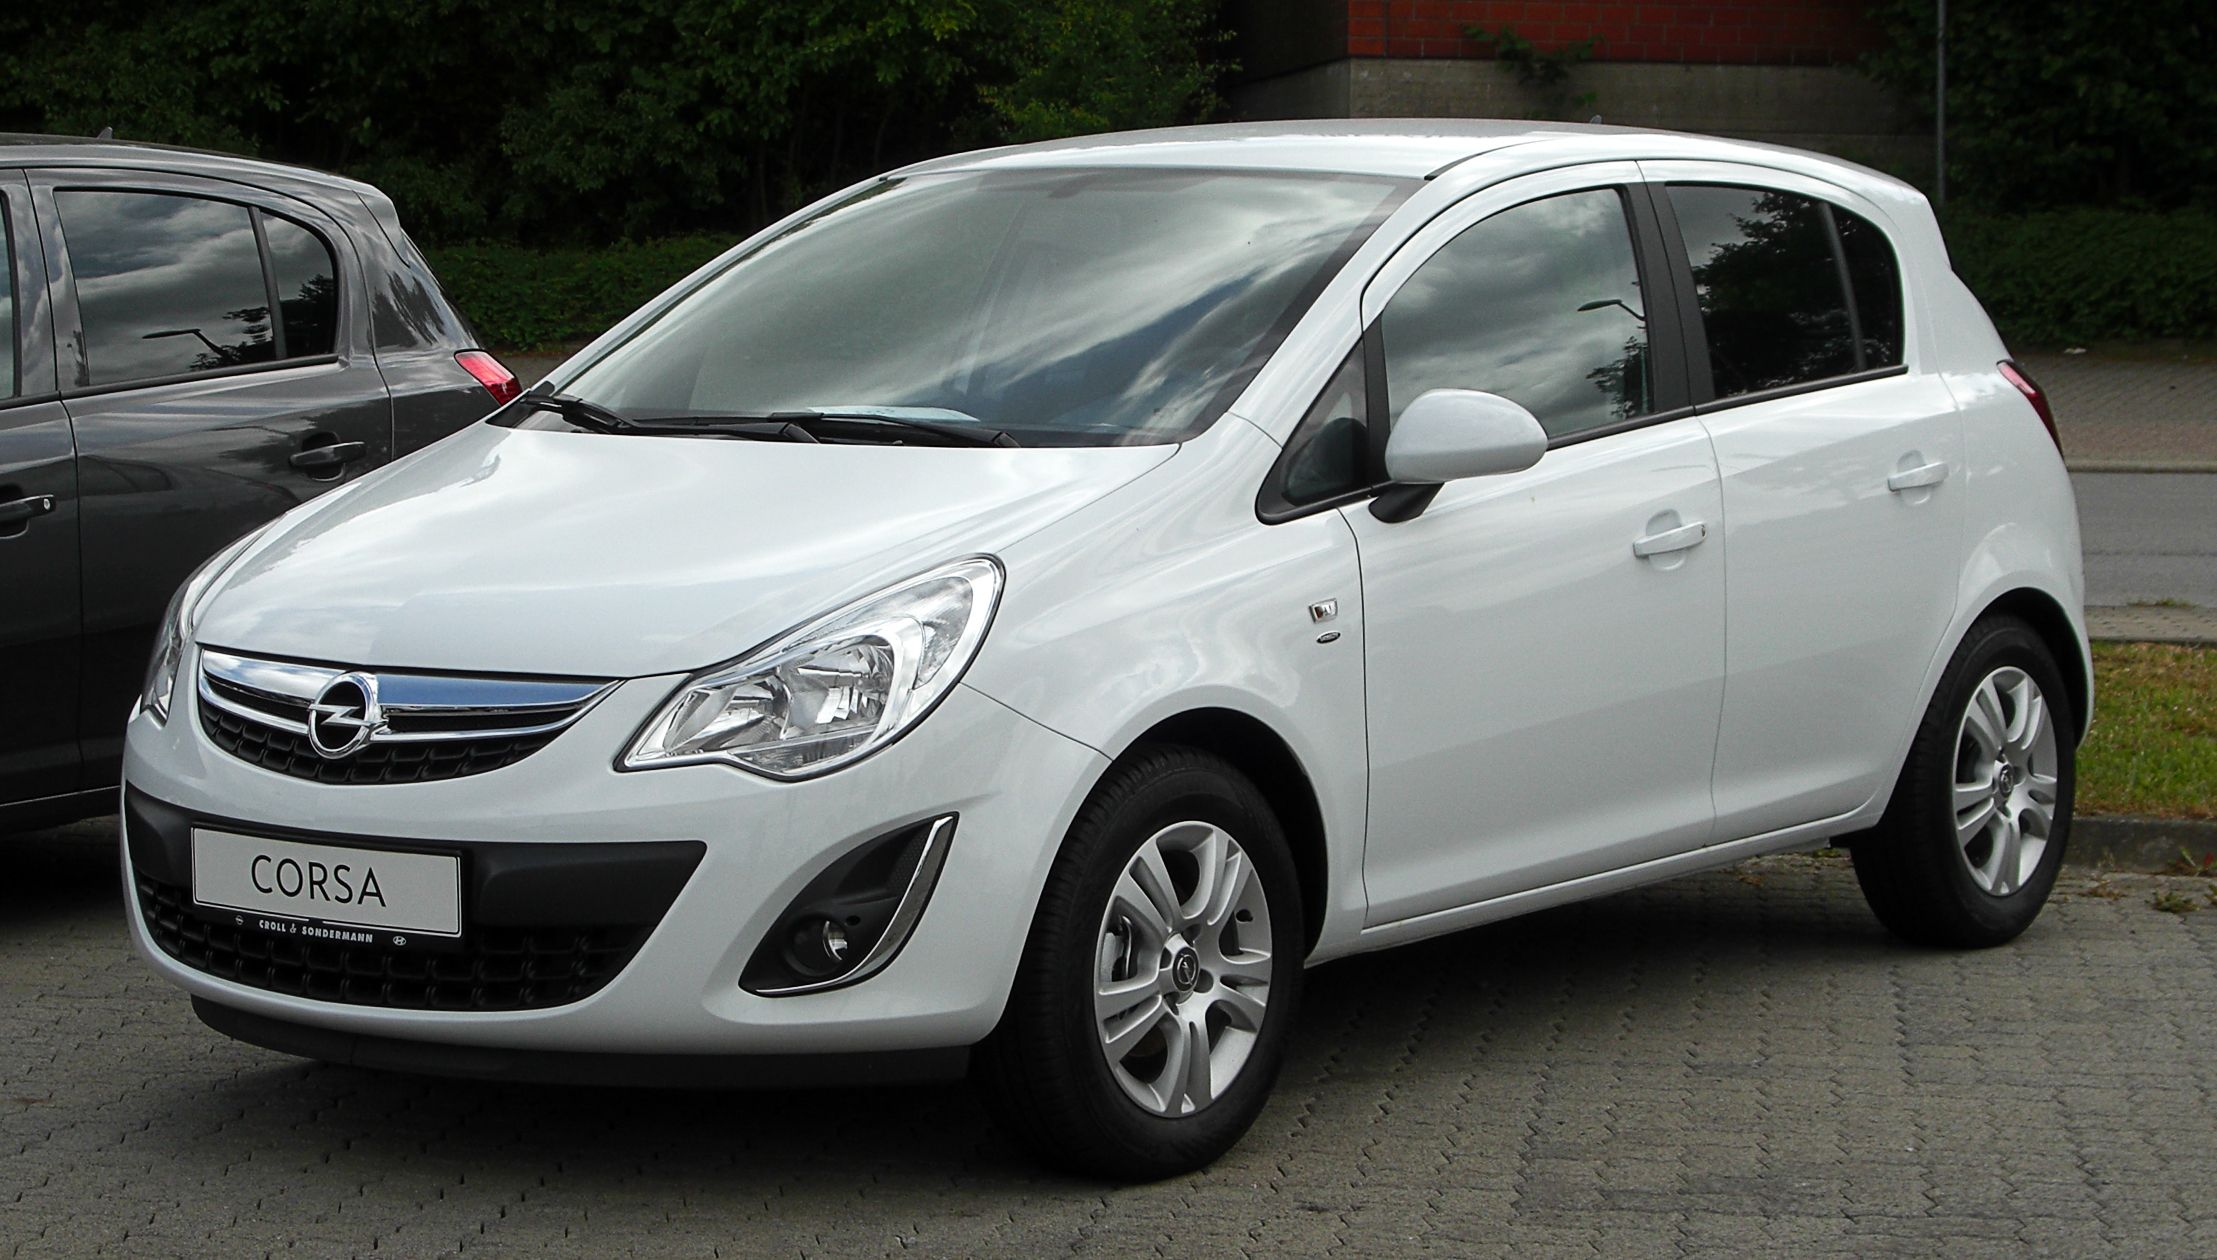 vauxhall corsa automatic and manual models cars vans and rh pinterest ca Vauxhall Corsa Trunk Space opel corsa automatic manual